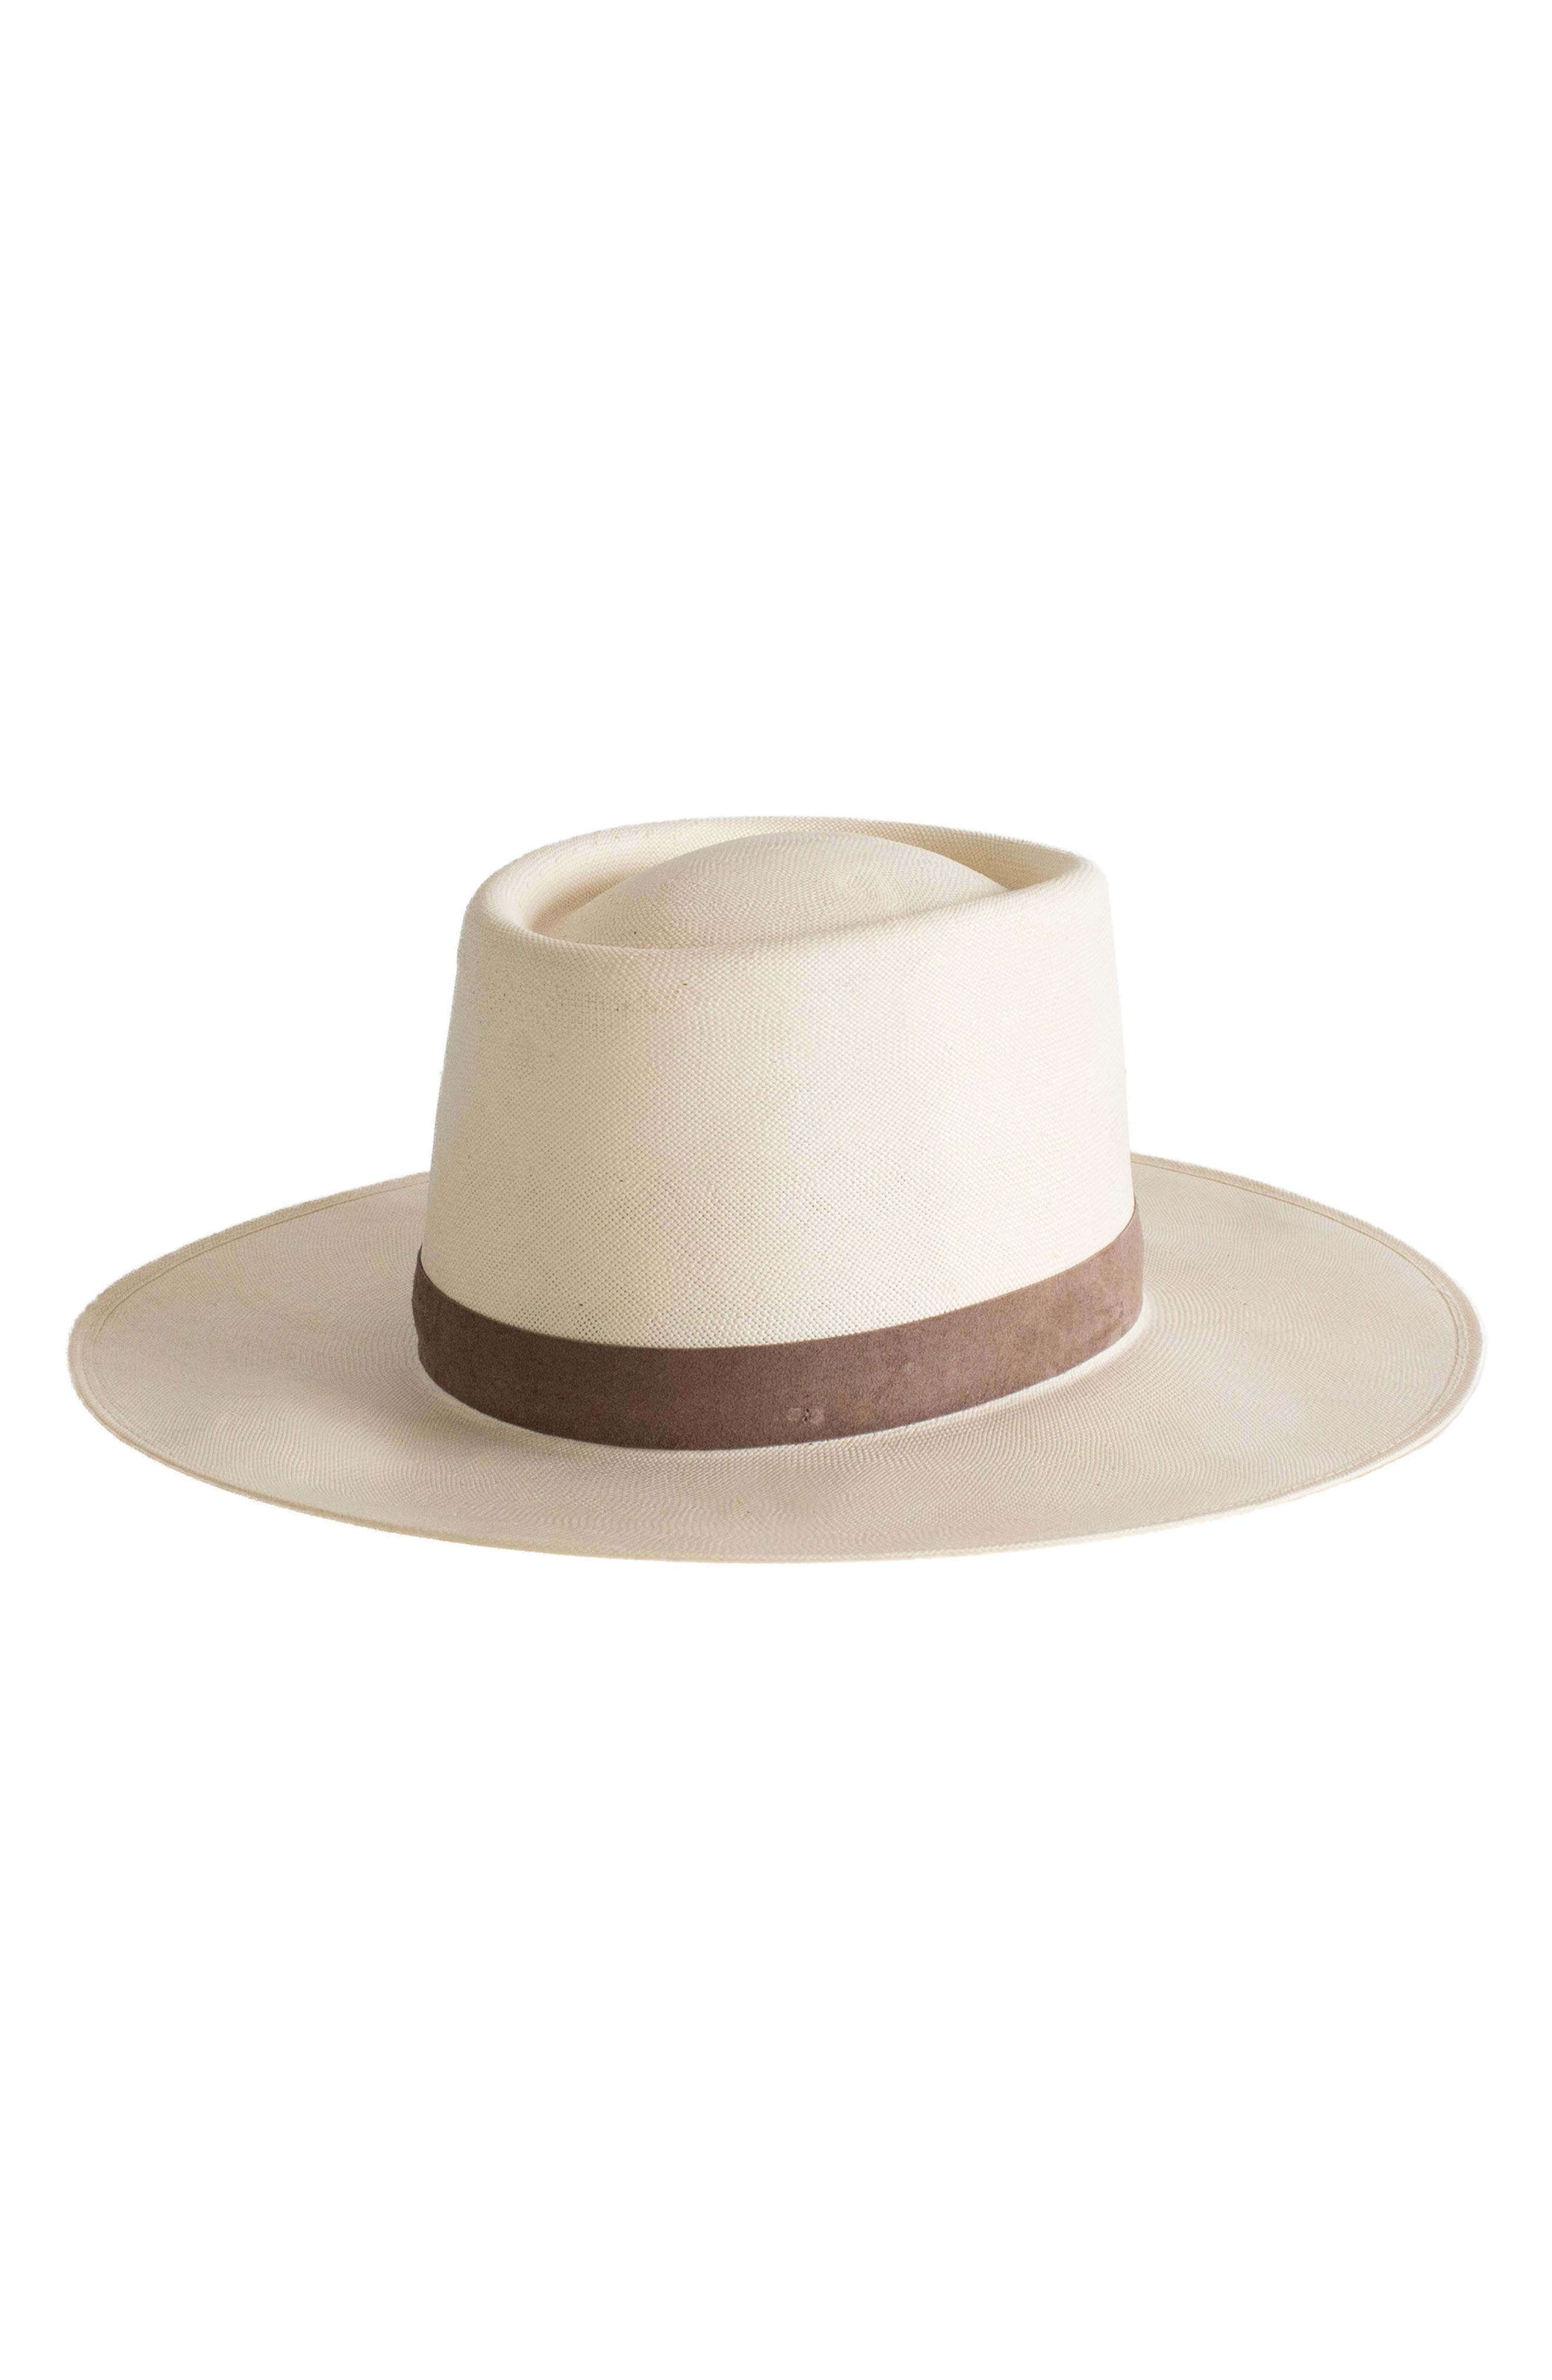 Shea Straw Hat,                         Main,                         color, Ivory